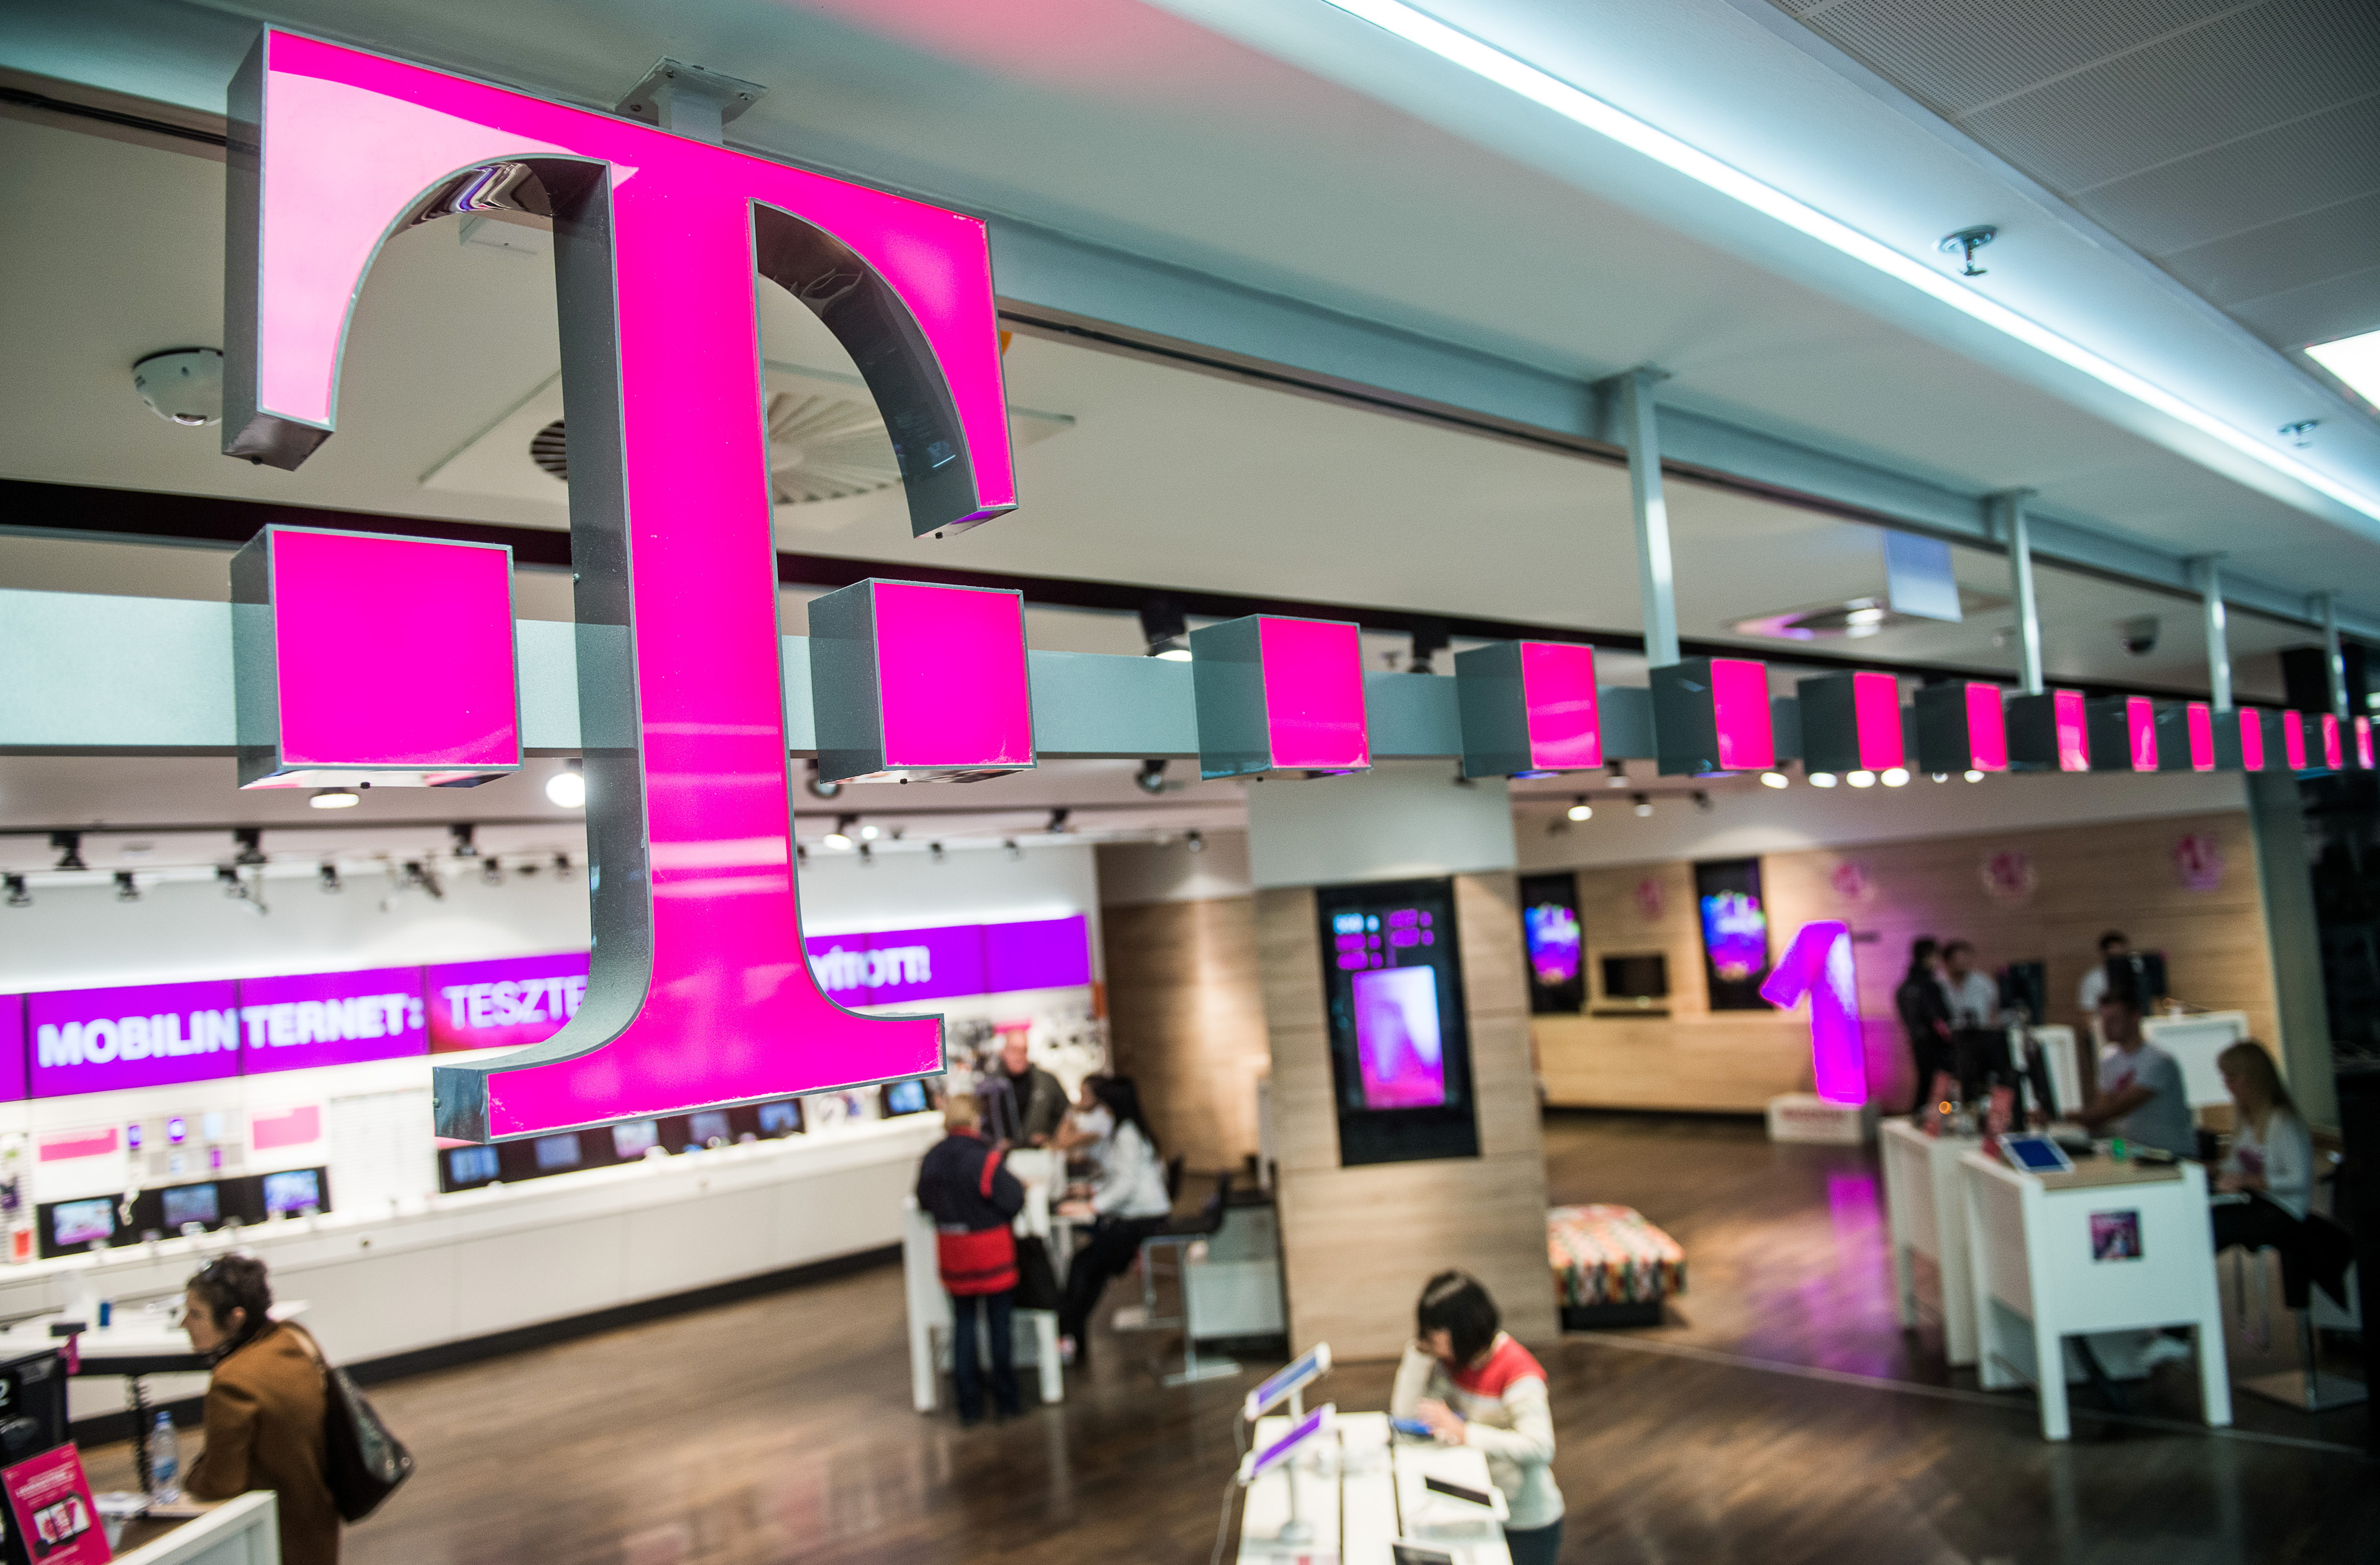 Customers browse mobile phone handsets as a sign sits above the entrance to a T-Mobile store, operated by Magyar Telekom Nyrt., in Budapest, Hungary, on Monday, Nov. 2, 2015.